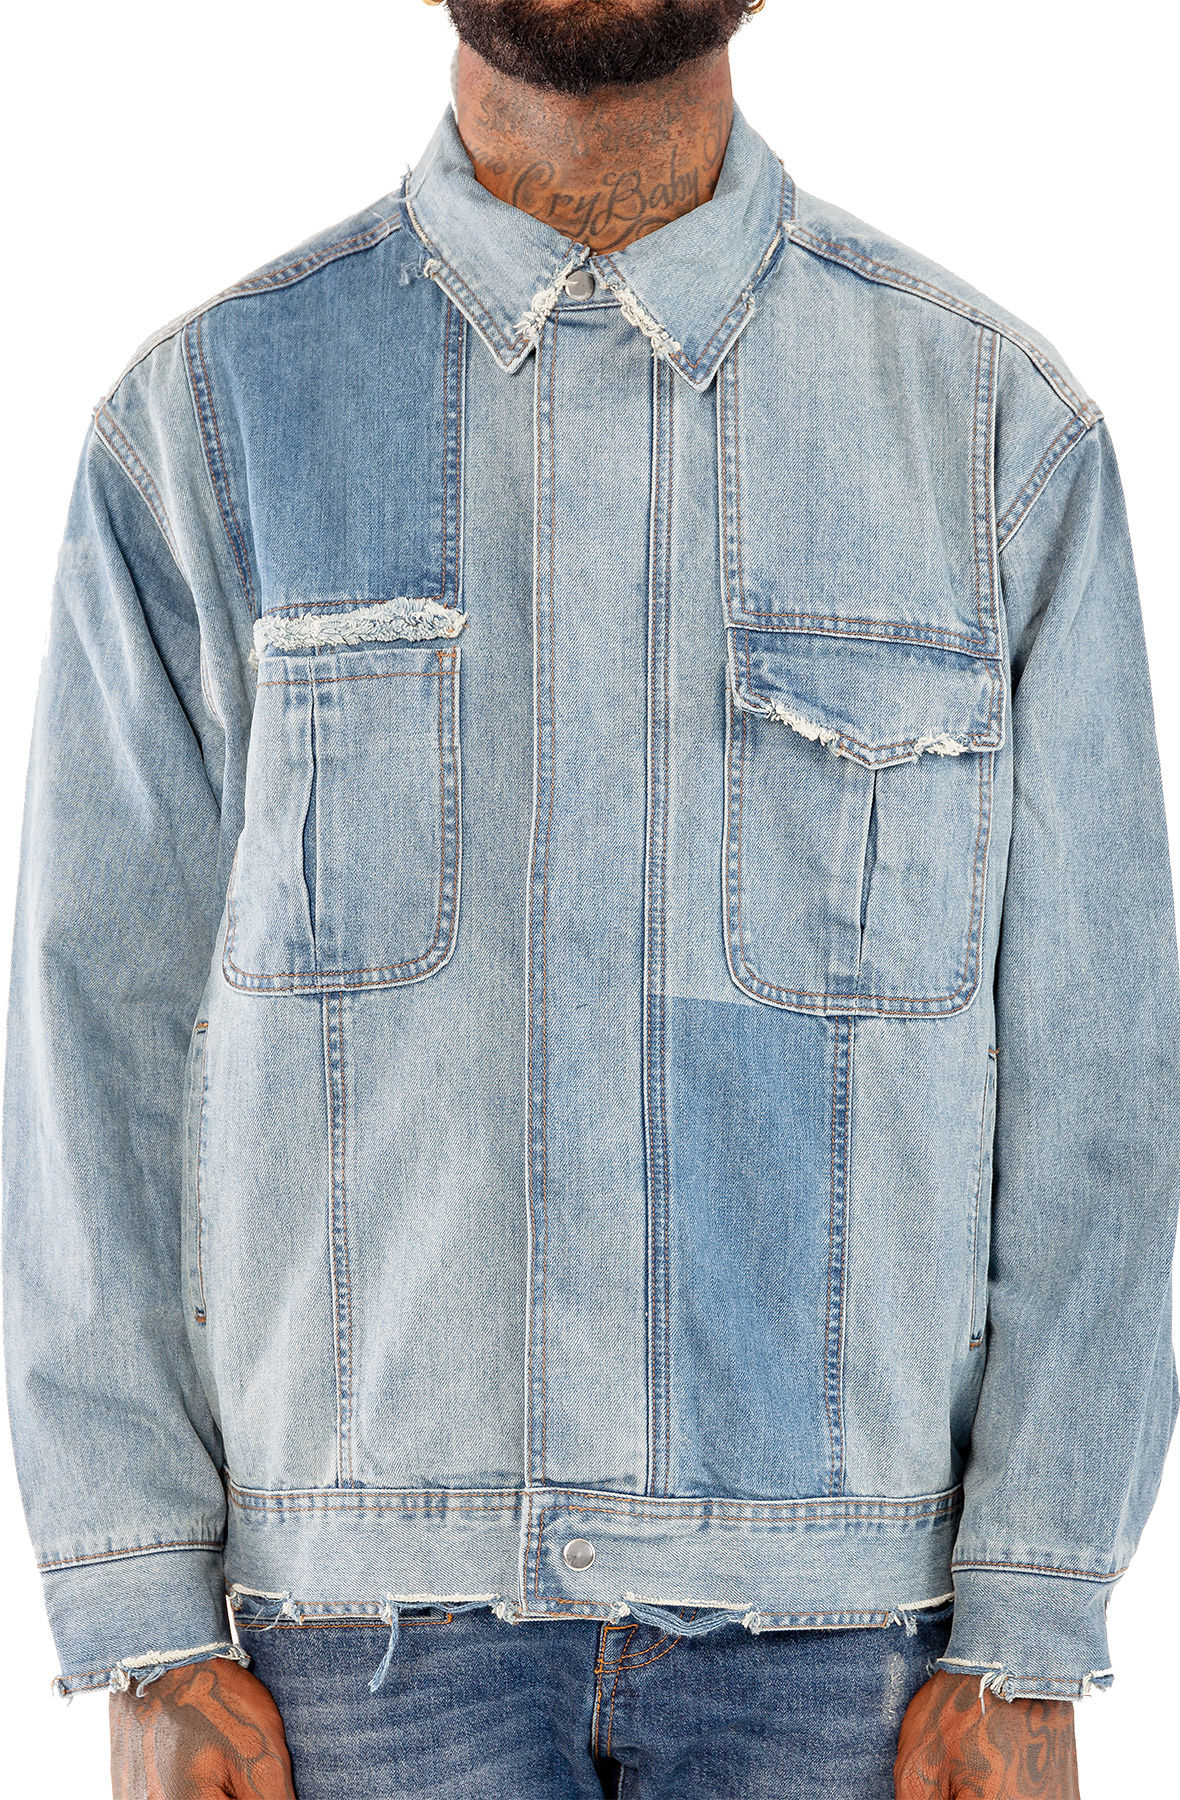 Image of Distressed Denim Jacket